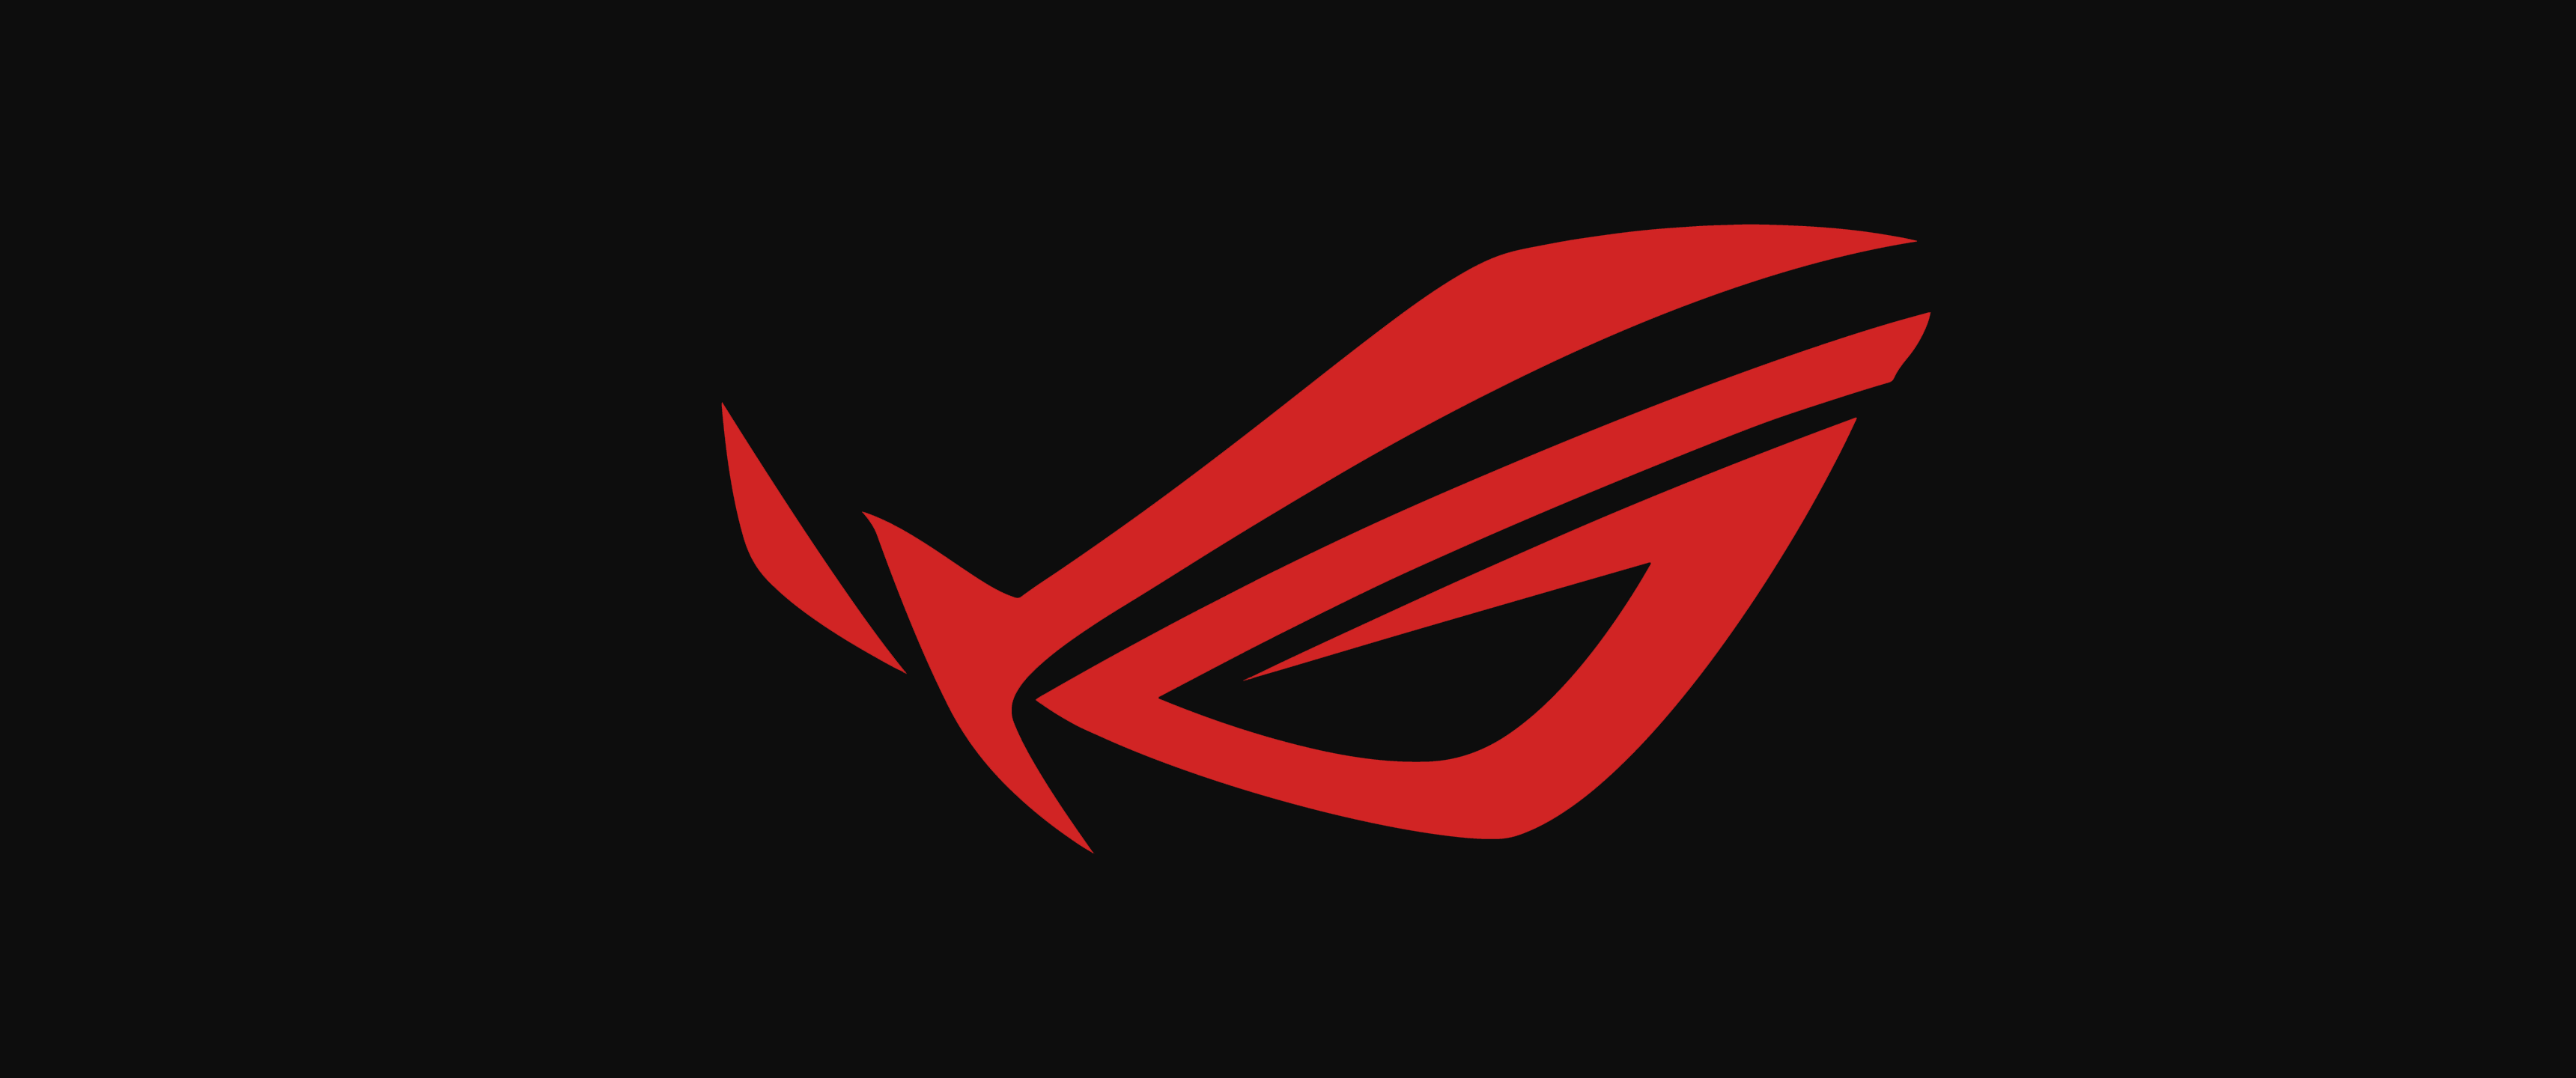 Asus Wallpaper 3440x1440: Wallpapers Ultrawide? Pasá Lince